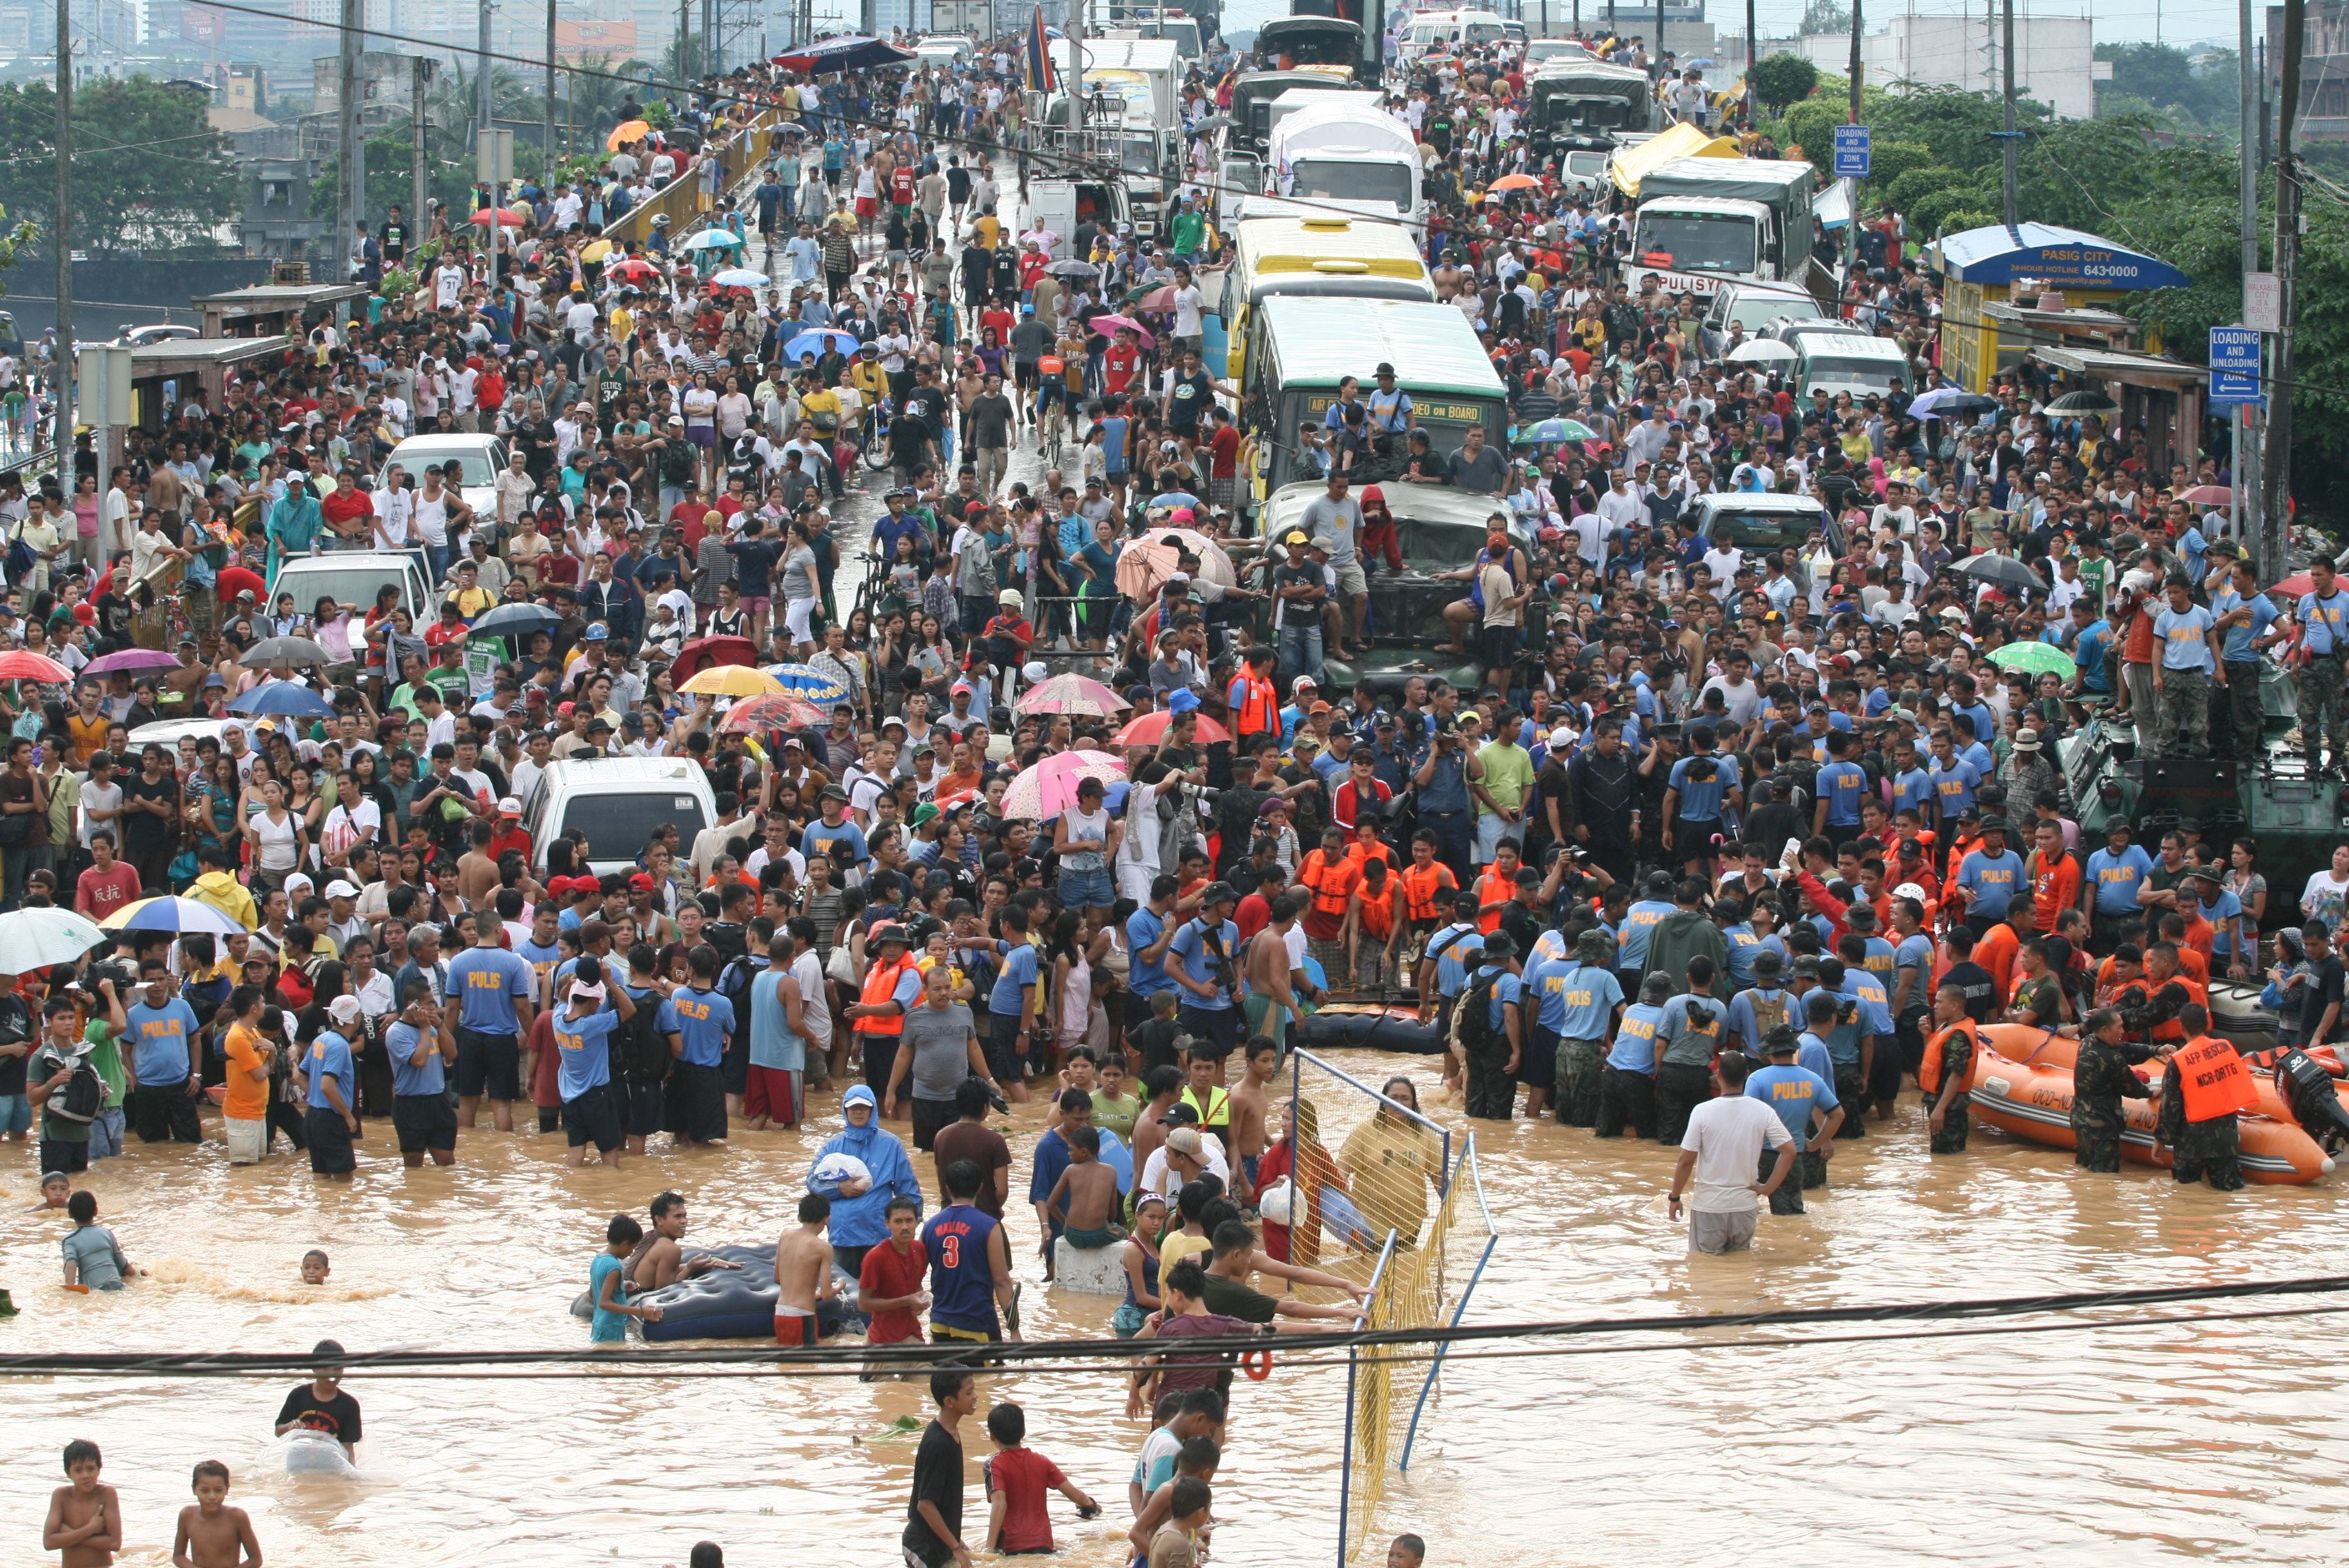 Hundreds of thousands of people were affected by Ketsana, which struck the the Philippines on 26 September 2009.  The storm inundated 80 percent of Manila on the island of Luzon, home to some 12 million people